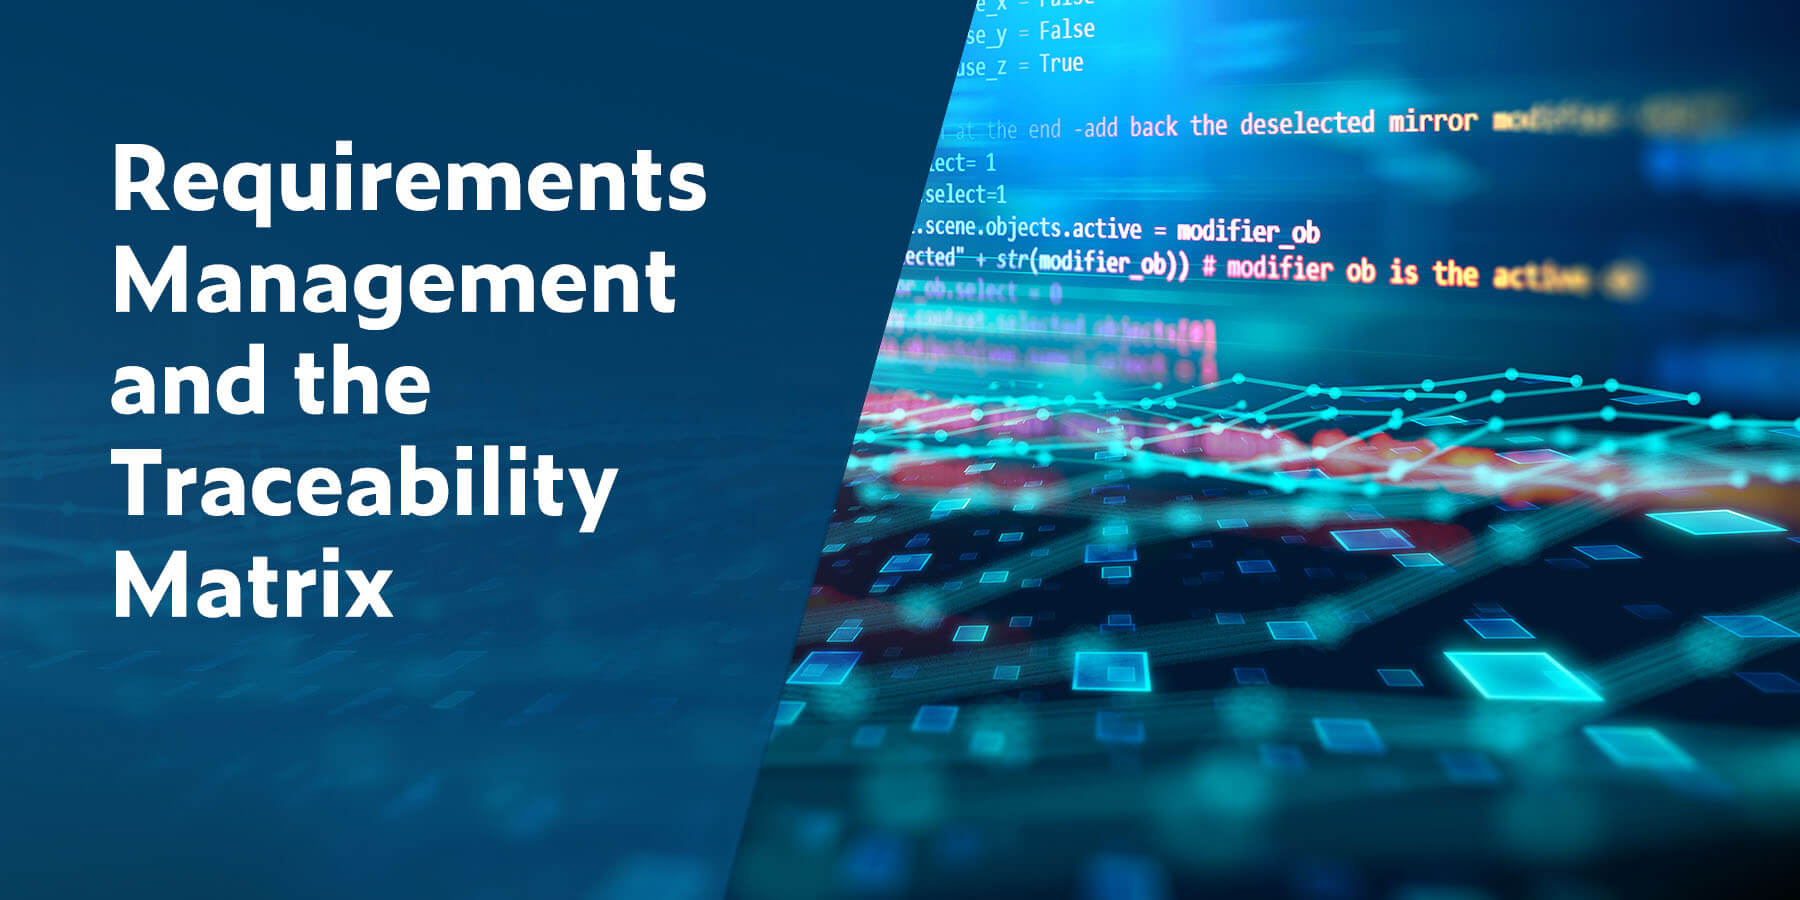 Requirements Management and the Traceability Matrix